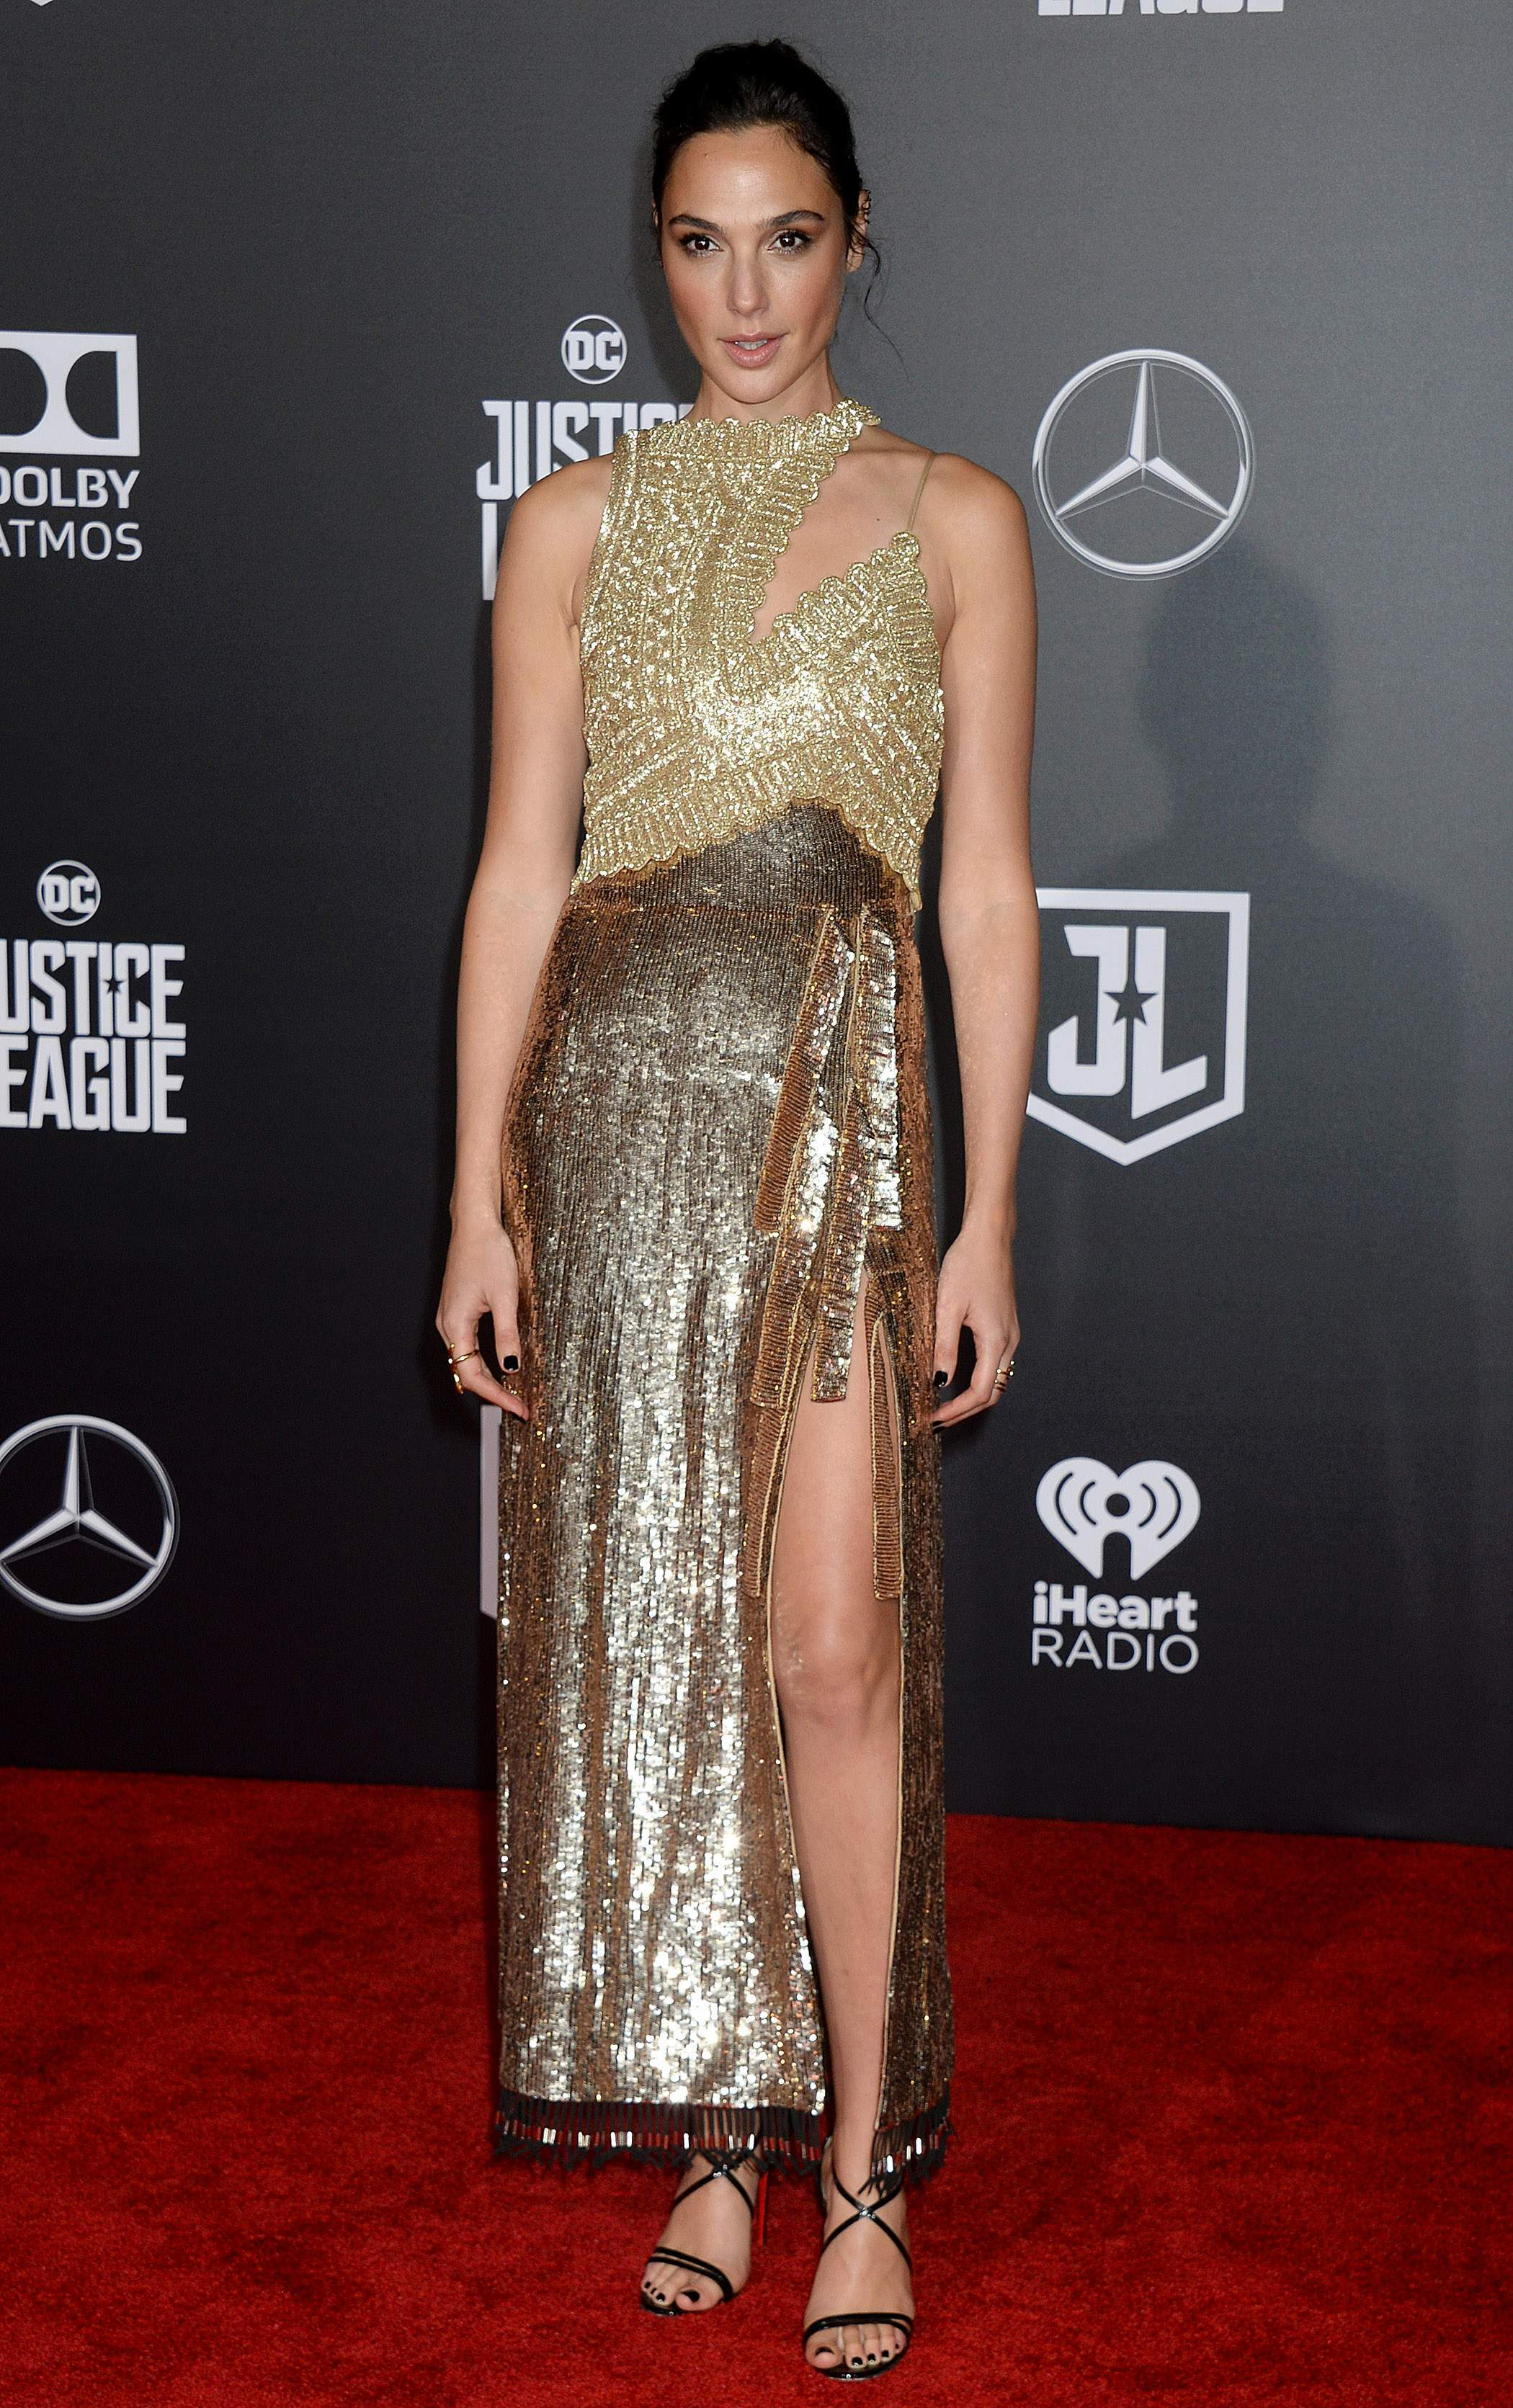 Gal Gadot at the premiere of 'Justice League' in Los Angeles